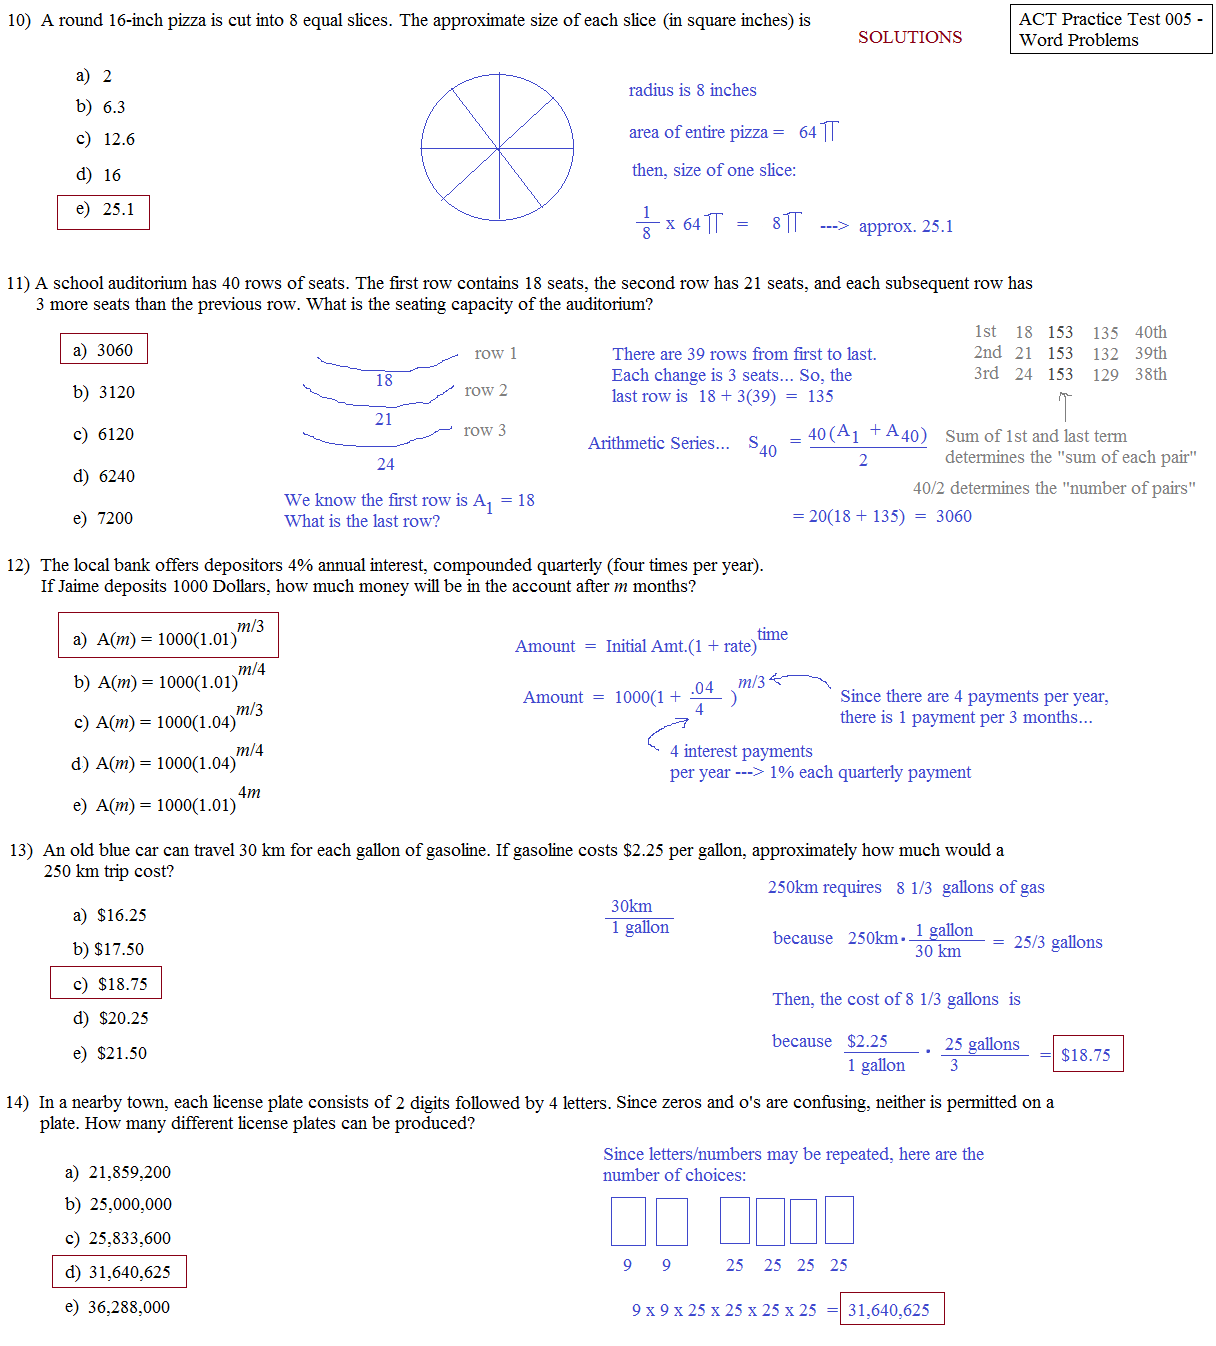 Math Plane - ACT Practice Test 5 - Word Problems